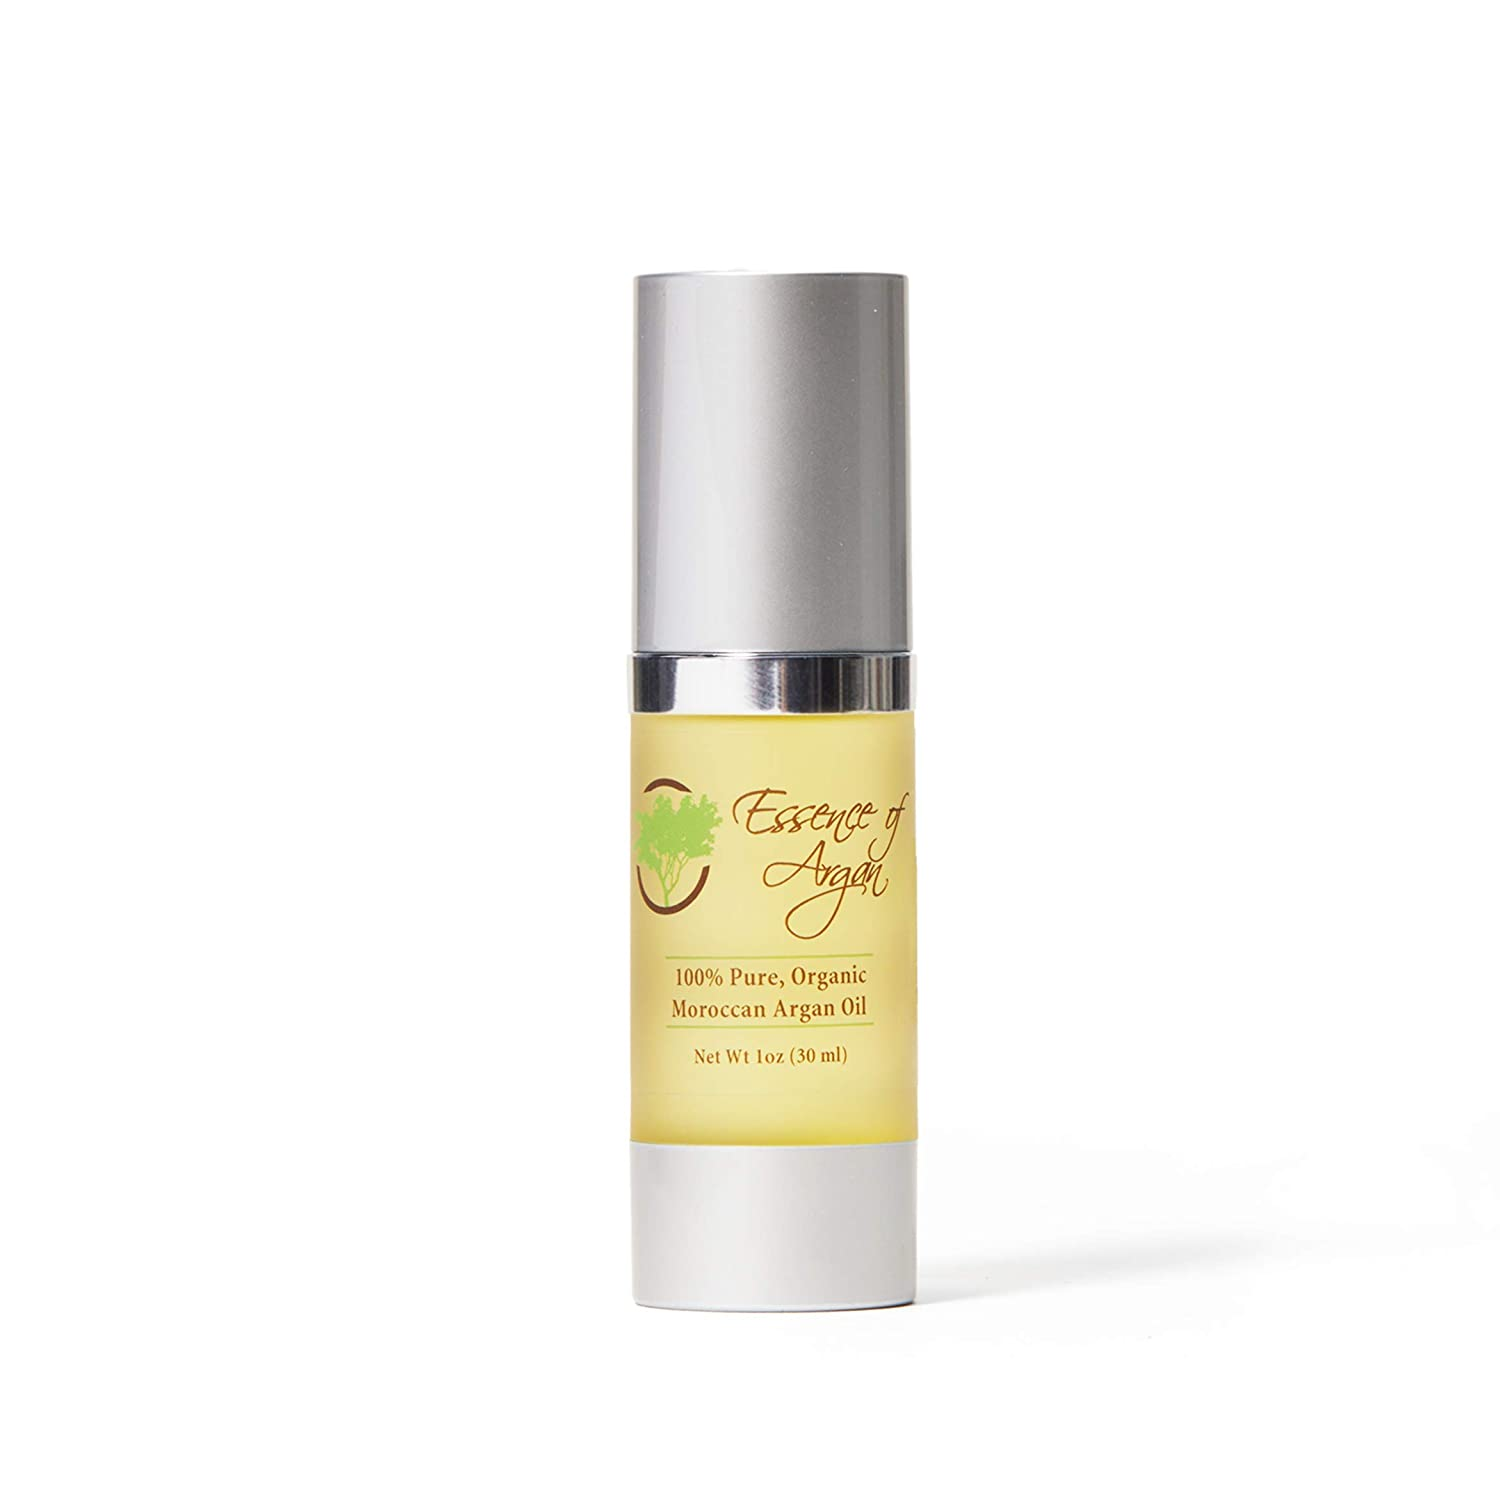 Pure Moroccan Argan Oil for Skin and Hair by Essence of Argan 30ml (1oz)